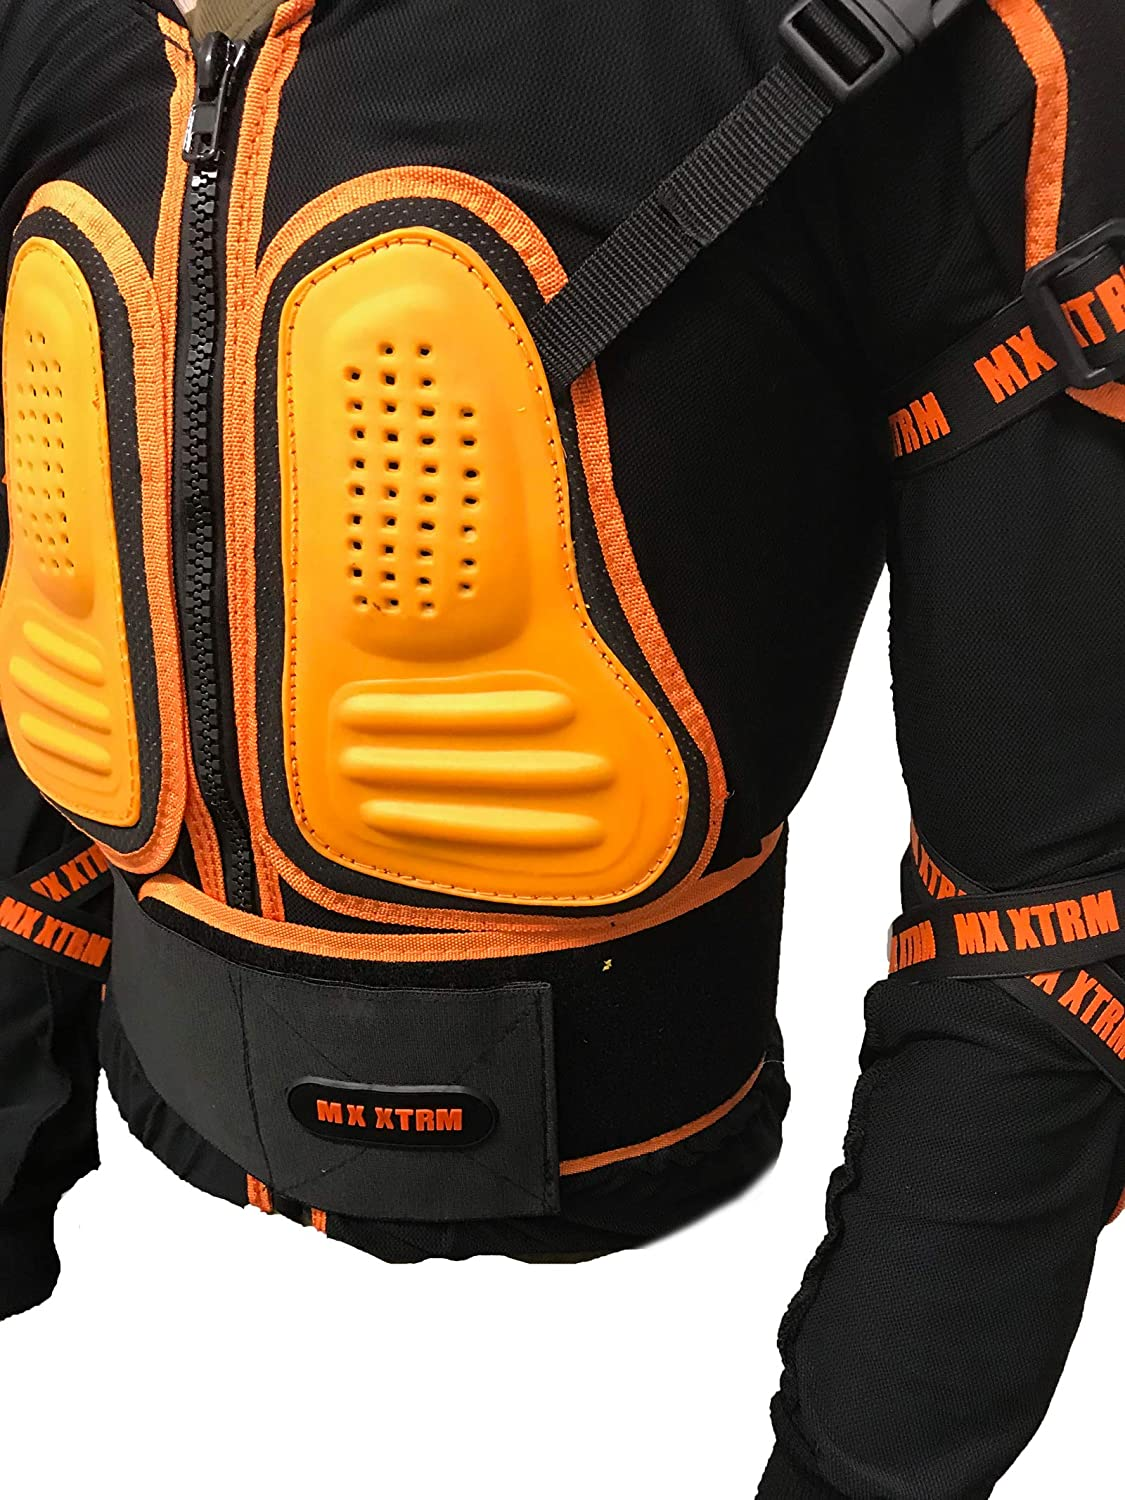 XTRM EDGE MX MOTORBIKE KIDS BODY ARMOUR Motorcycle Junior Child Off Road Quad ATV BMX Sports CE Approve Full Body Deflector ORANGE